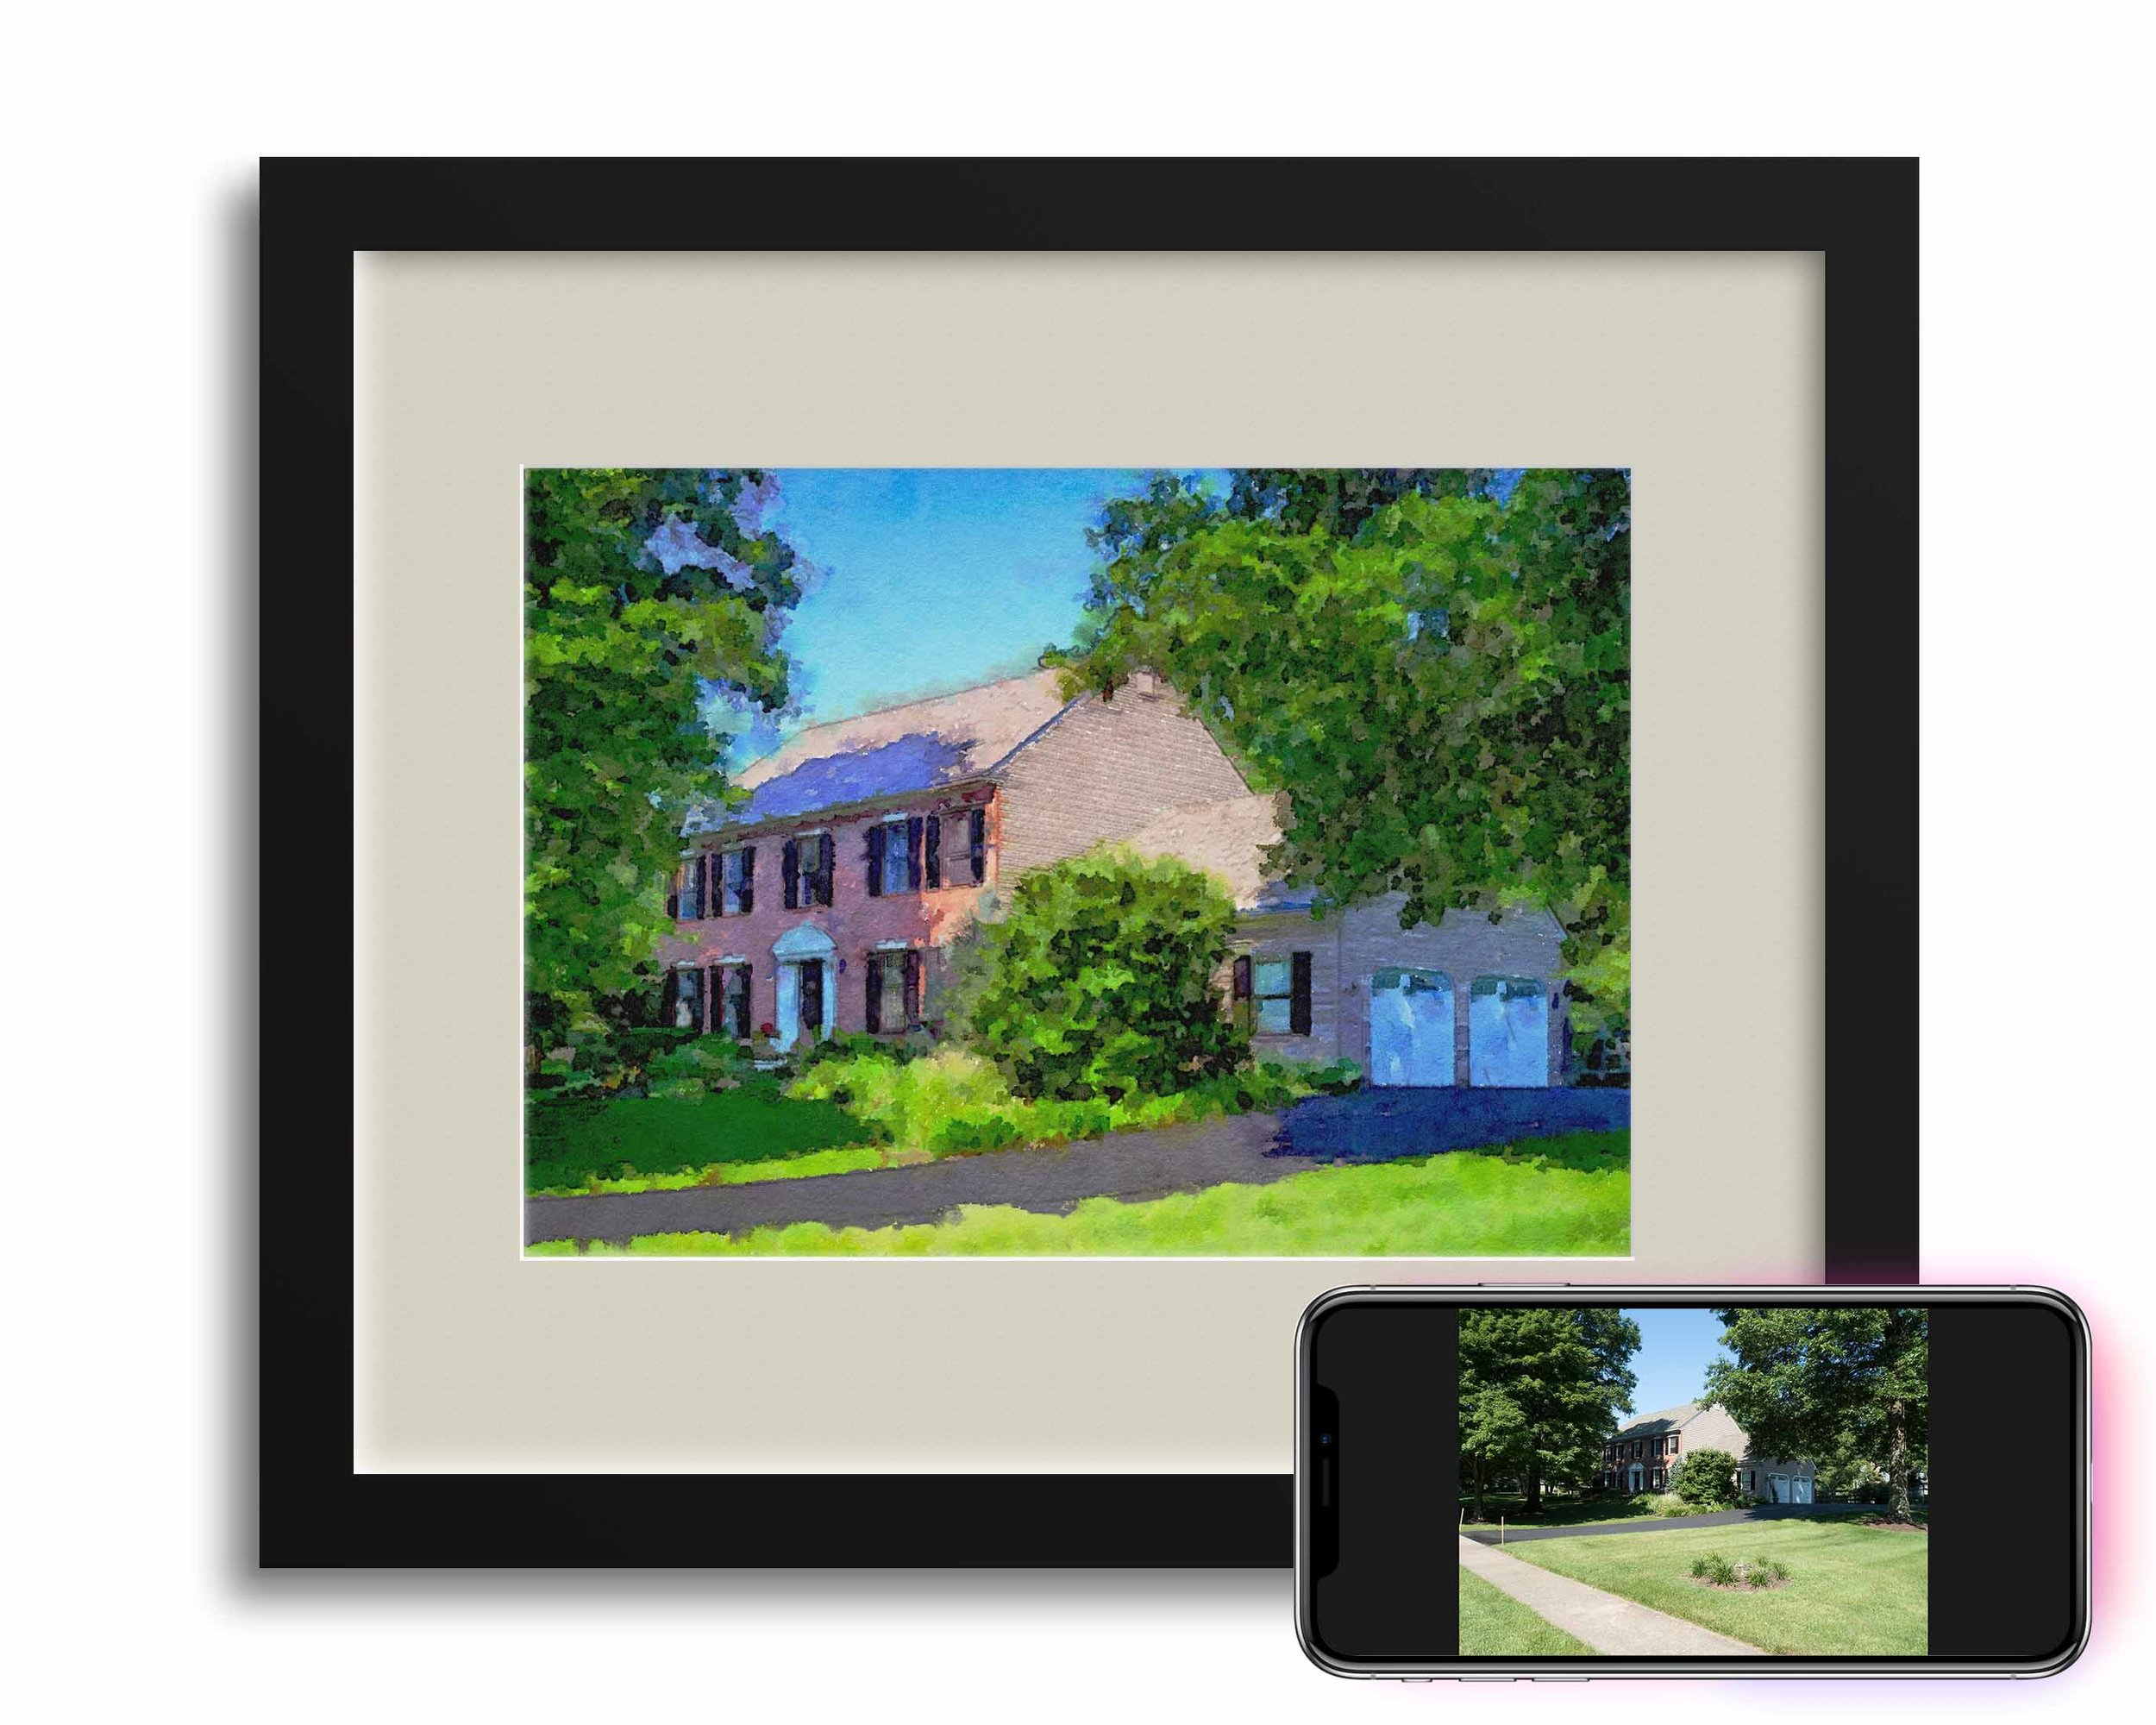 After 19 years bringing up three kids in the same house the family moved 2,000 miles away. A photograph of the old house was taken and rendered into a Photocolor. The final Photocolor was framed and hung in the new house and three MiniArt Cards were framed for each of the kids to have in their dorm rooms.